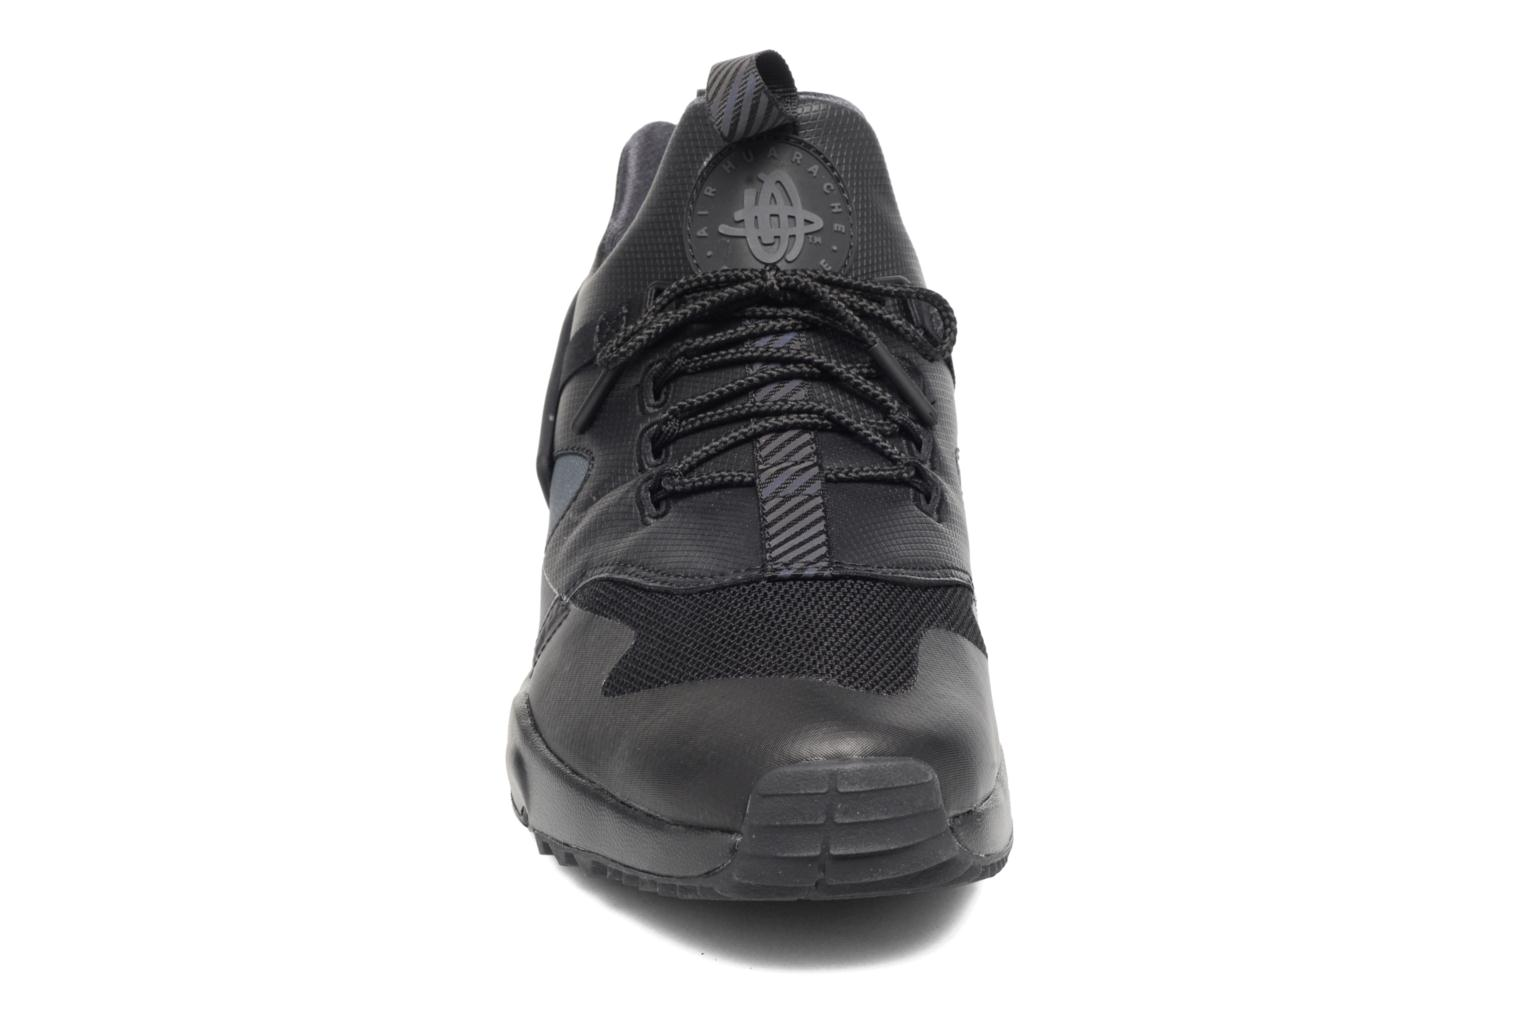 Nike Air Huarache Utility Prm Black/Anthracite-Anthracite